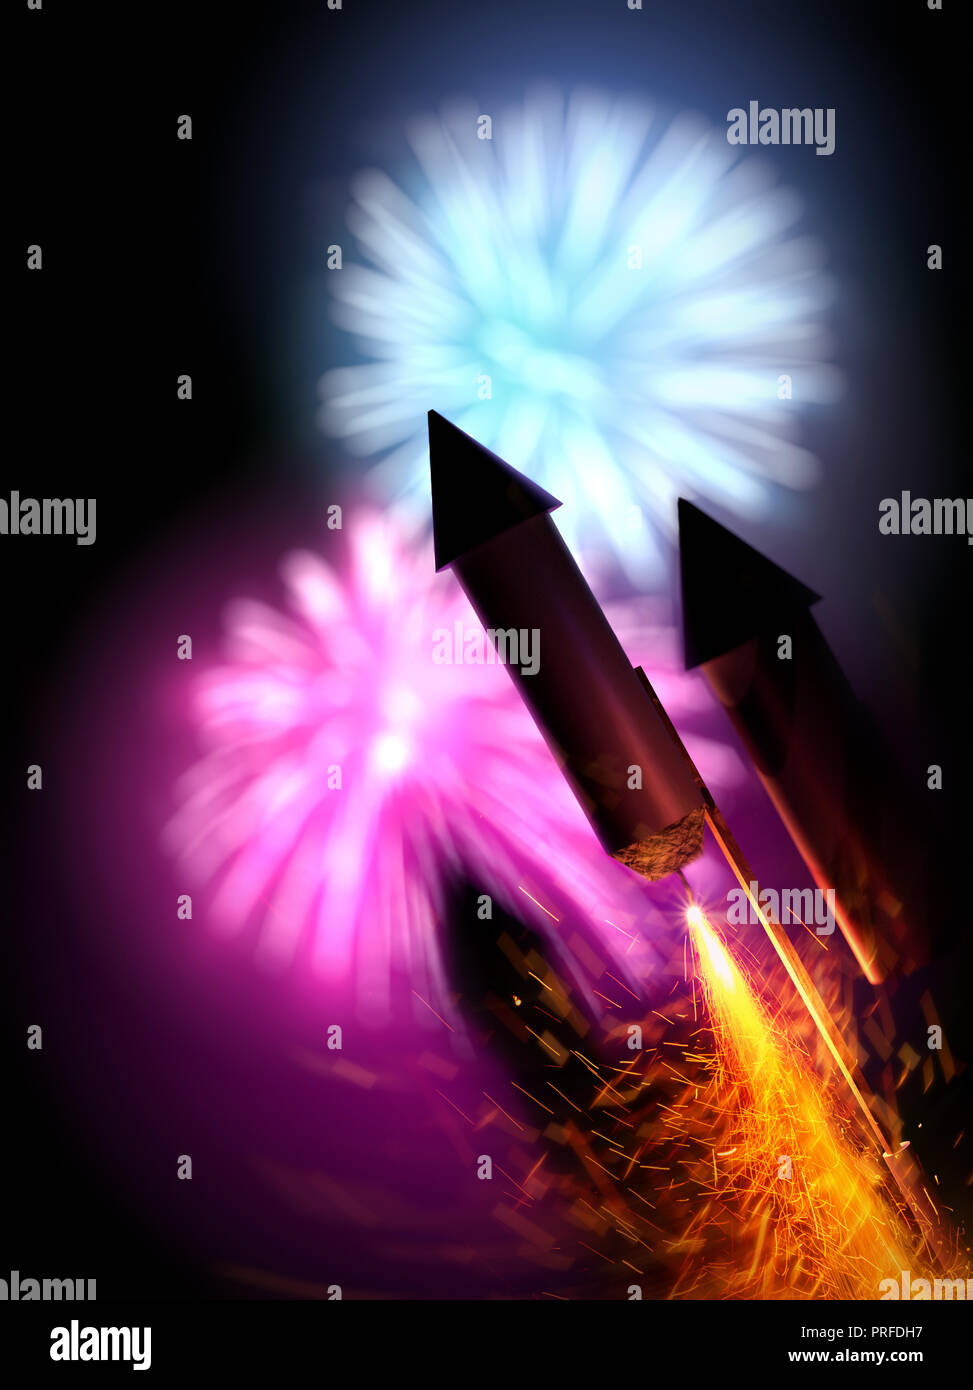 Close up image of firework rockets with a large display in the background. Bonfire night background - 3D illustration. Stock Photo